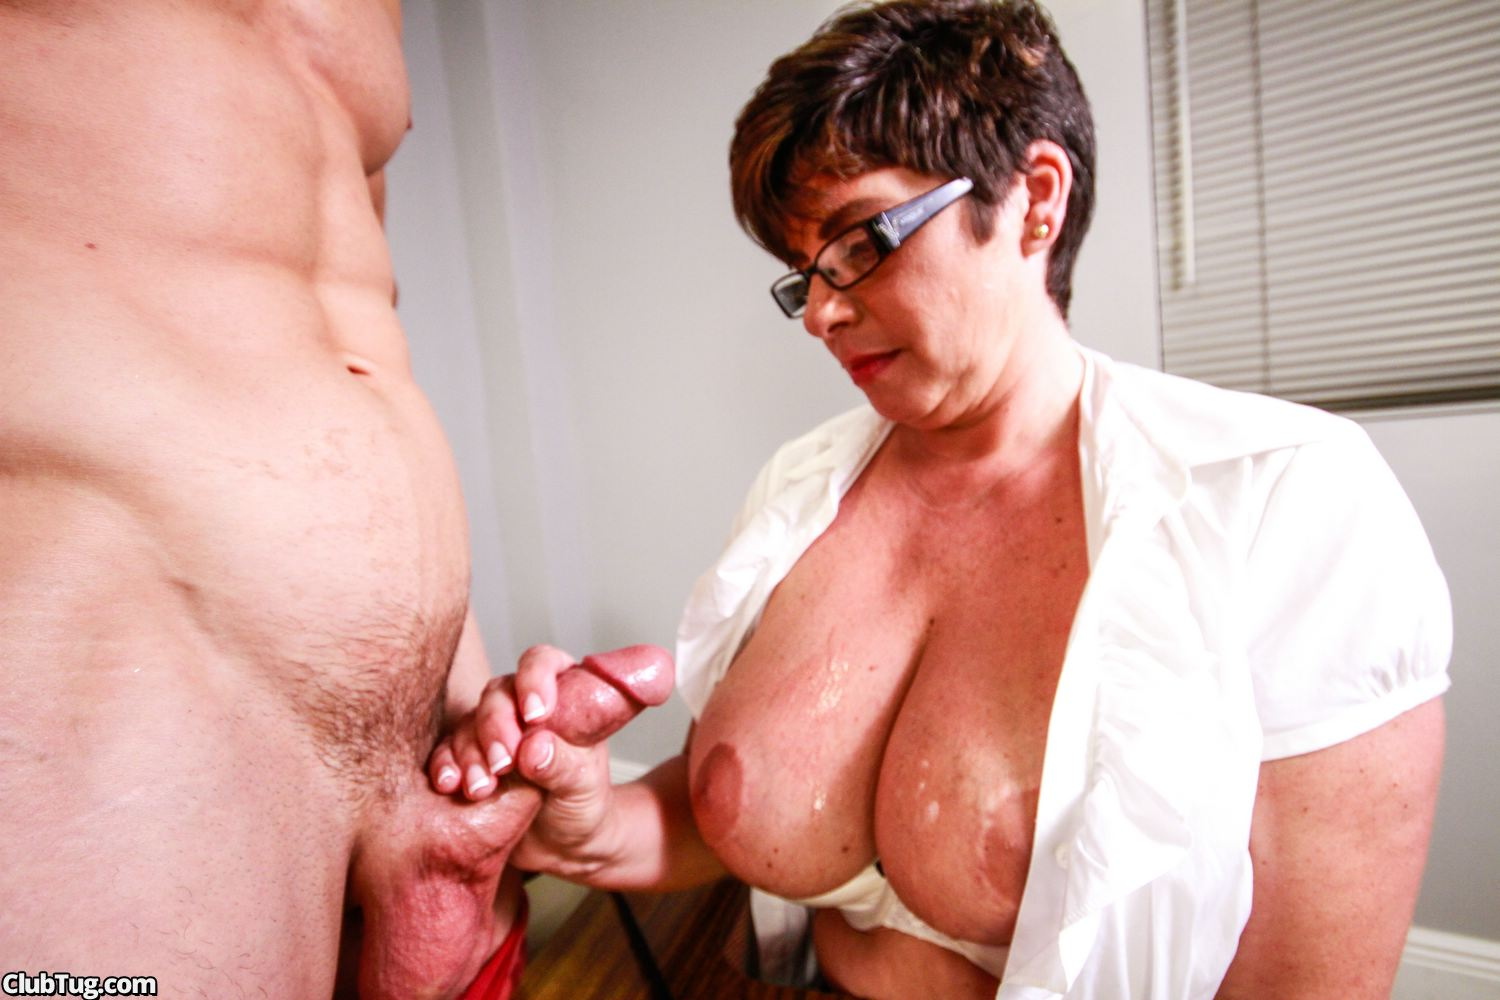 Milf Caught Boy Wanking And Make A Final Move